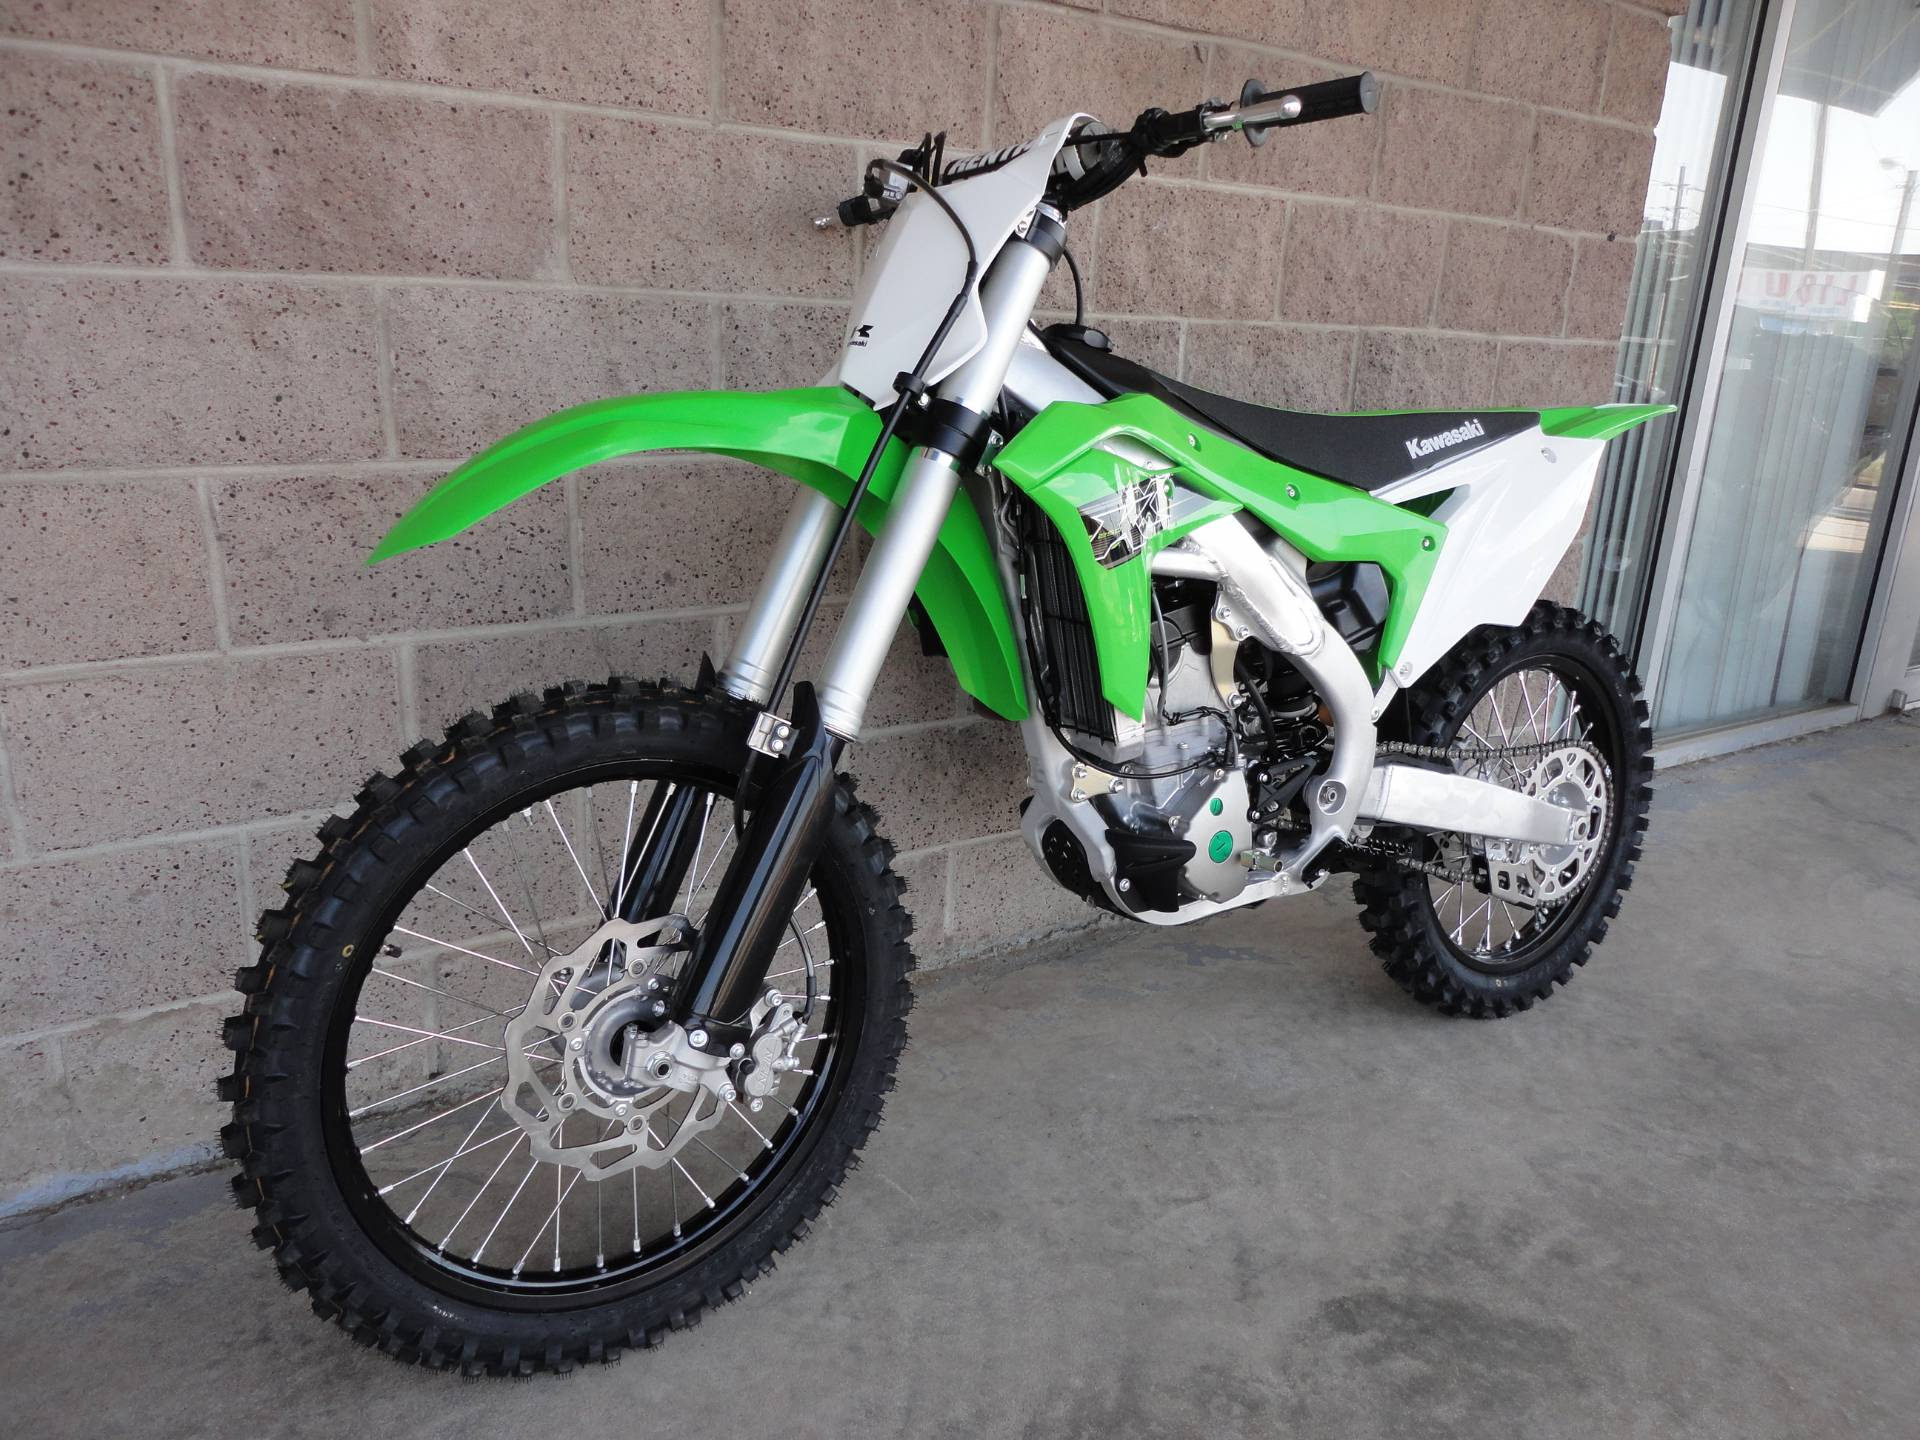 2019 Kawasaki Kx 250 In Denver Colorado